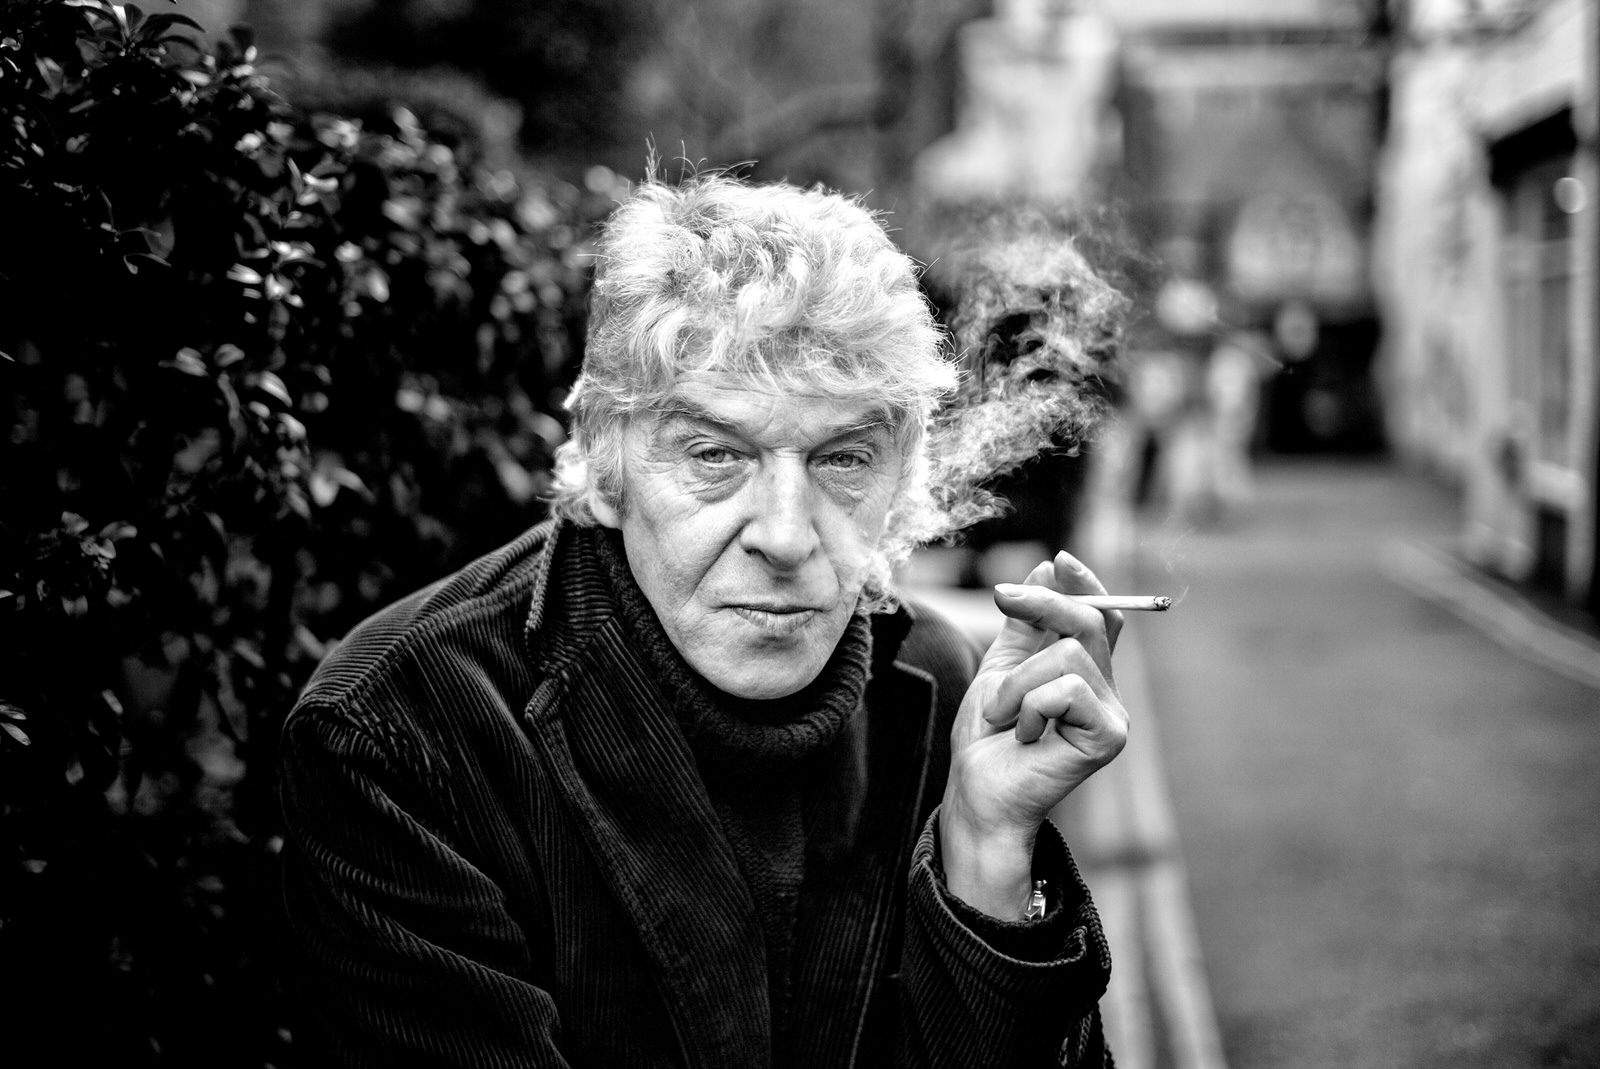 Alan Schaller - London Street Photographer - International - Portrait30.jpg